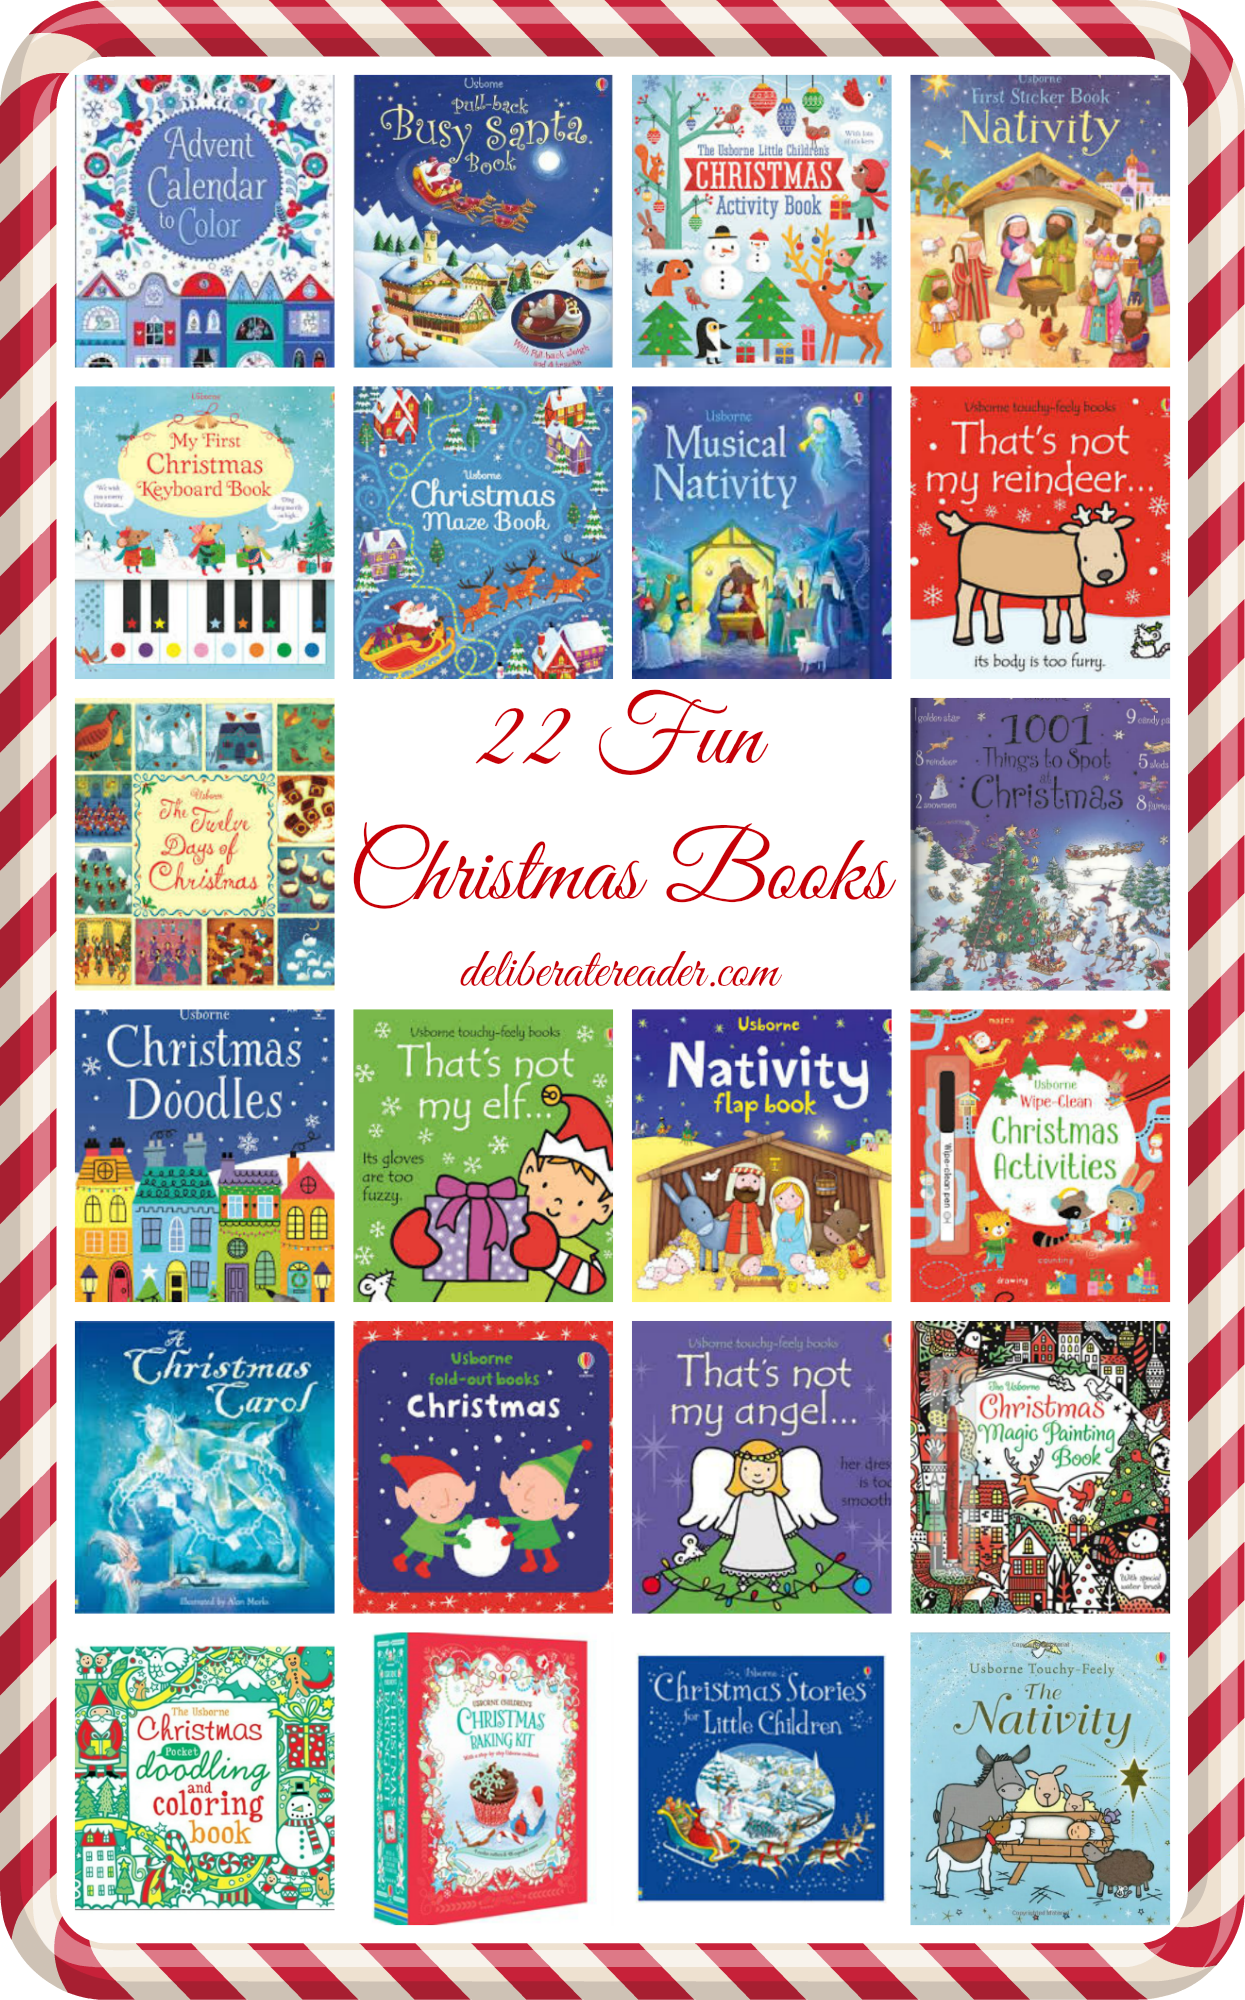 usborne-christmas-books-2017